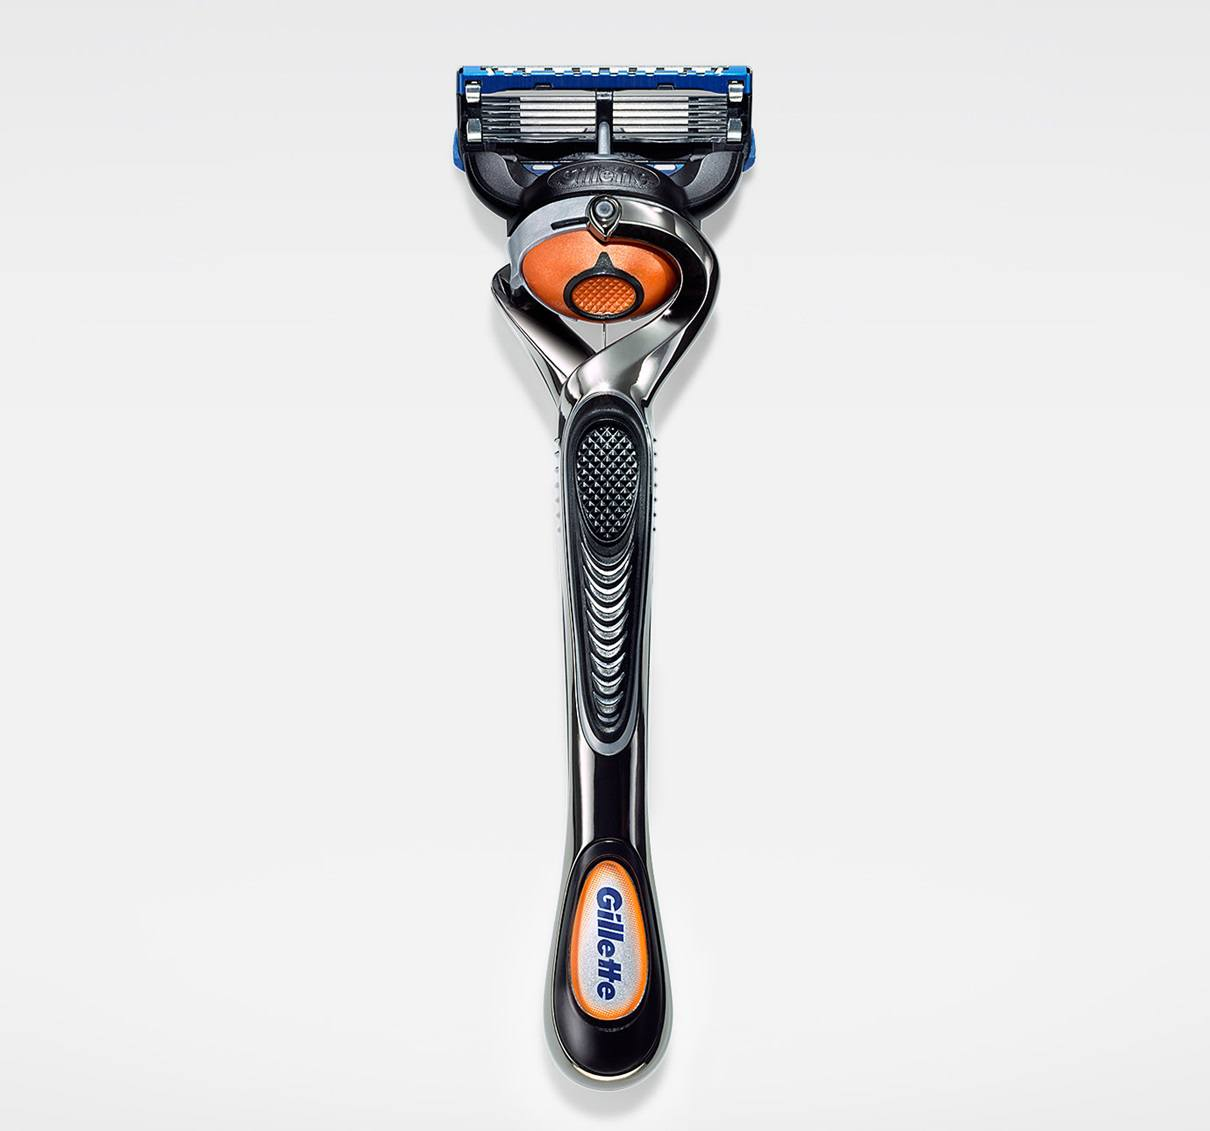 08_ProGlide_Manual_Razor_Desktop